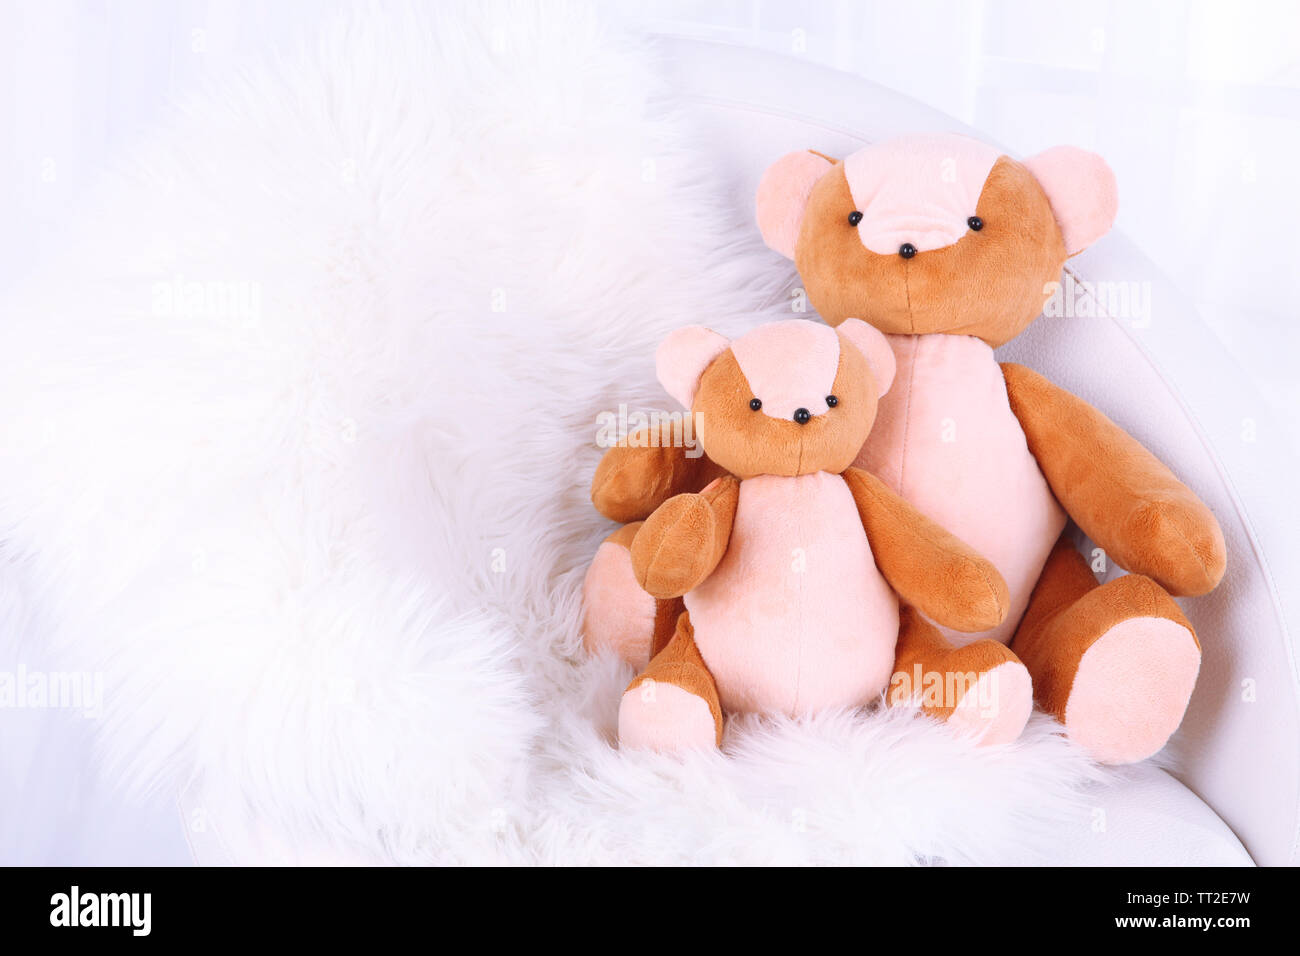 Two bears toy on armchair in room - Stock Image